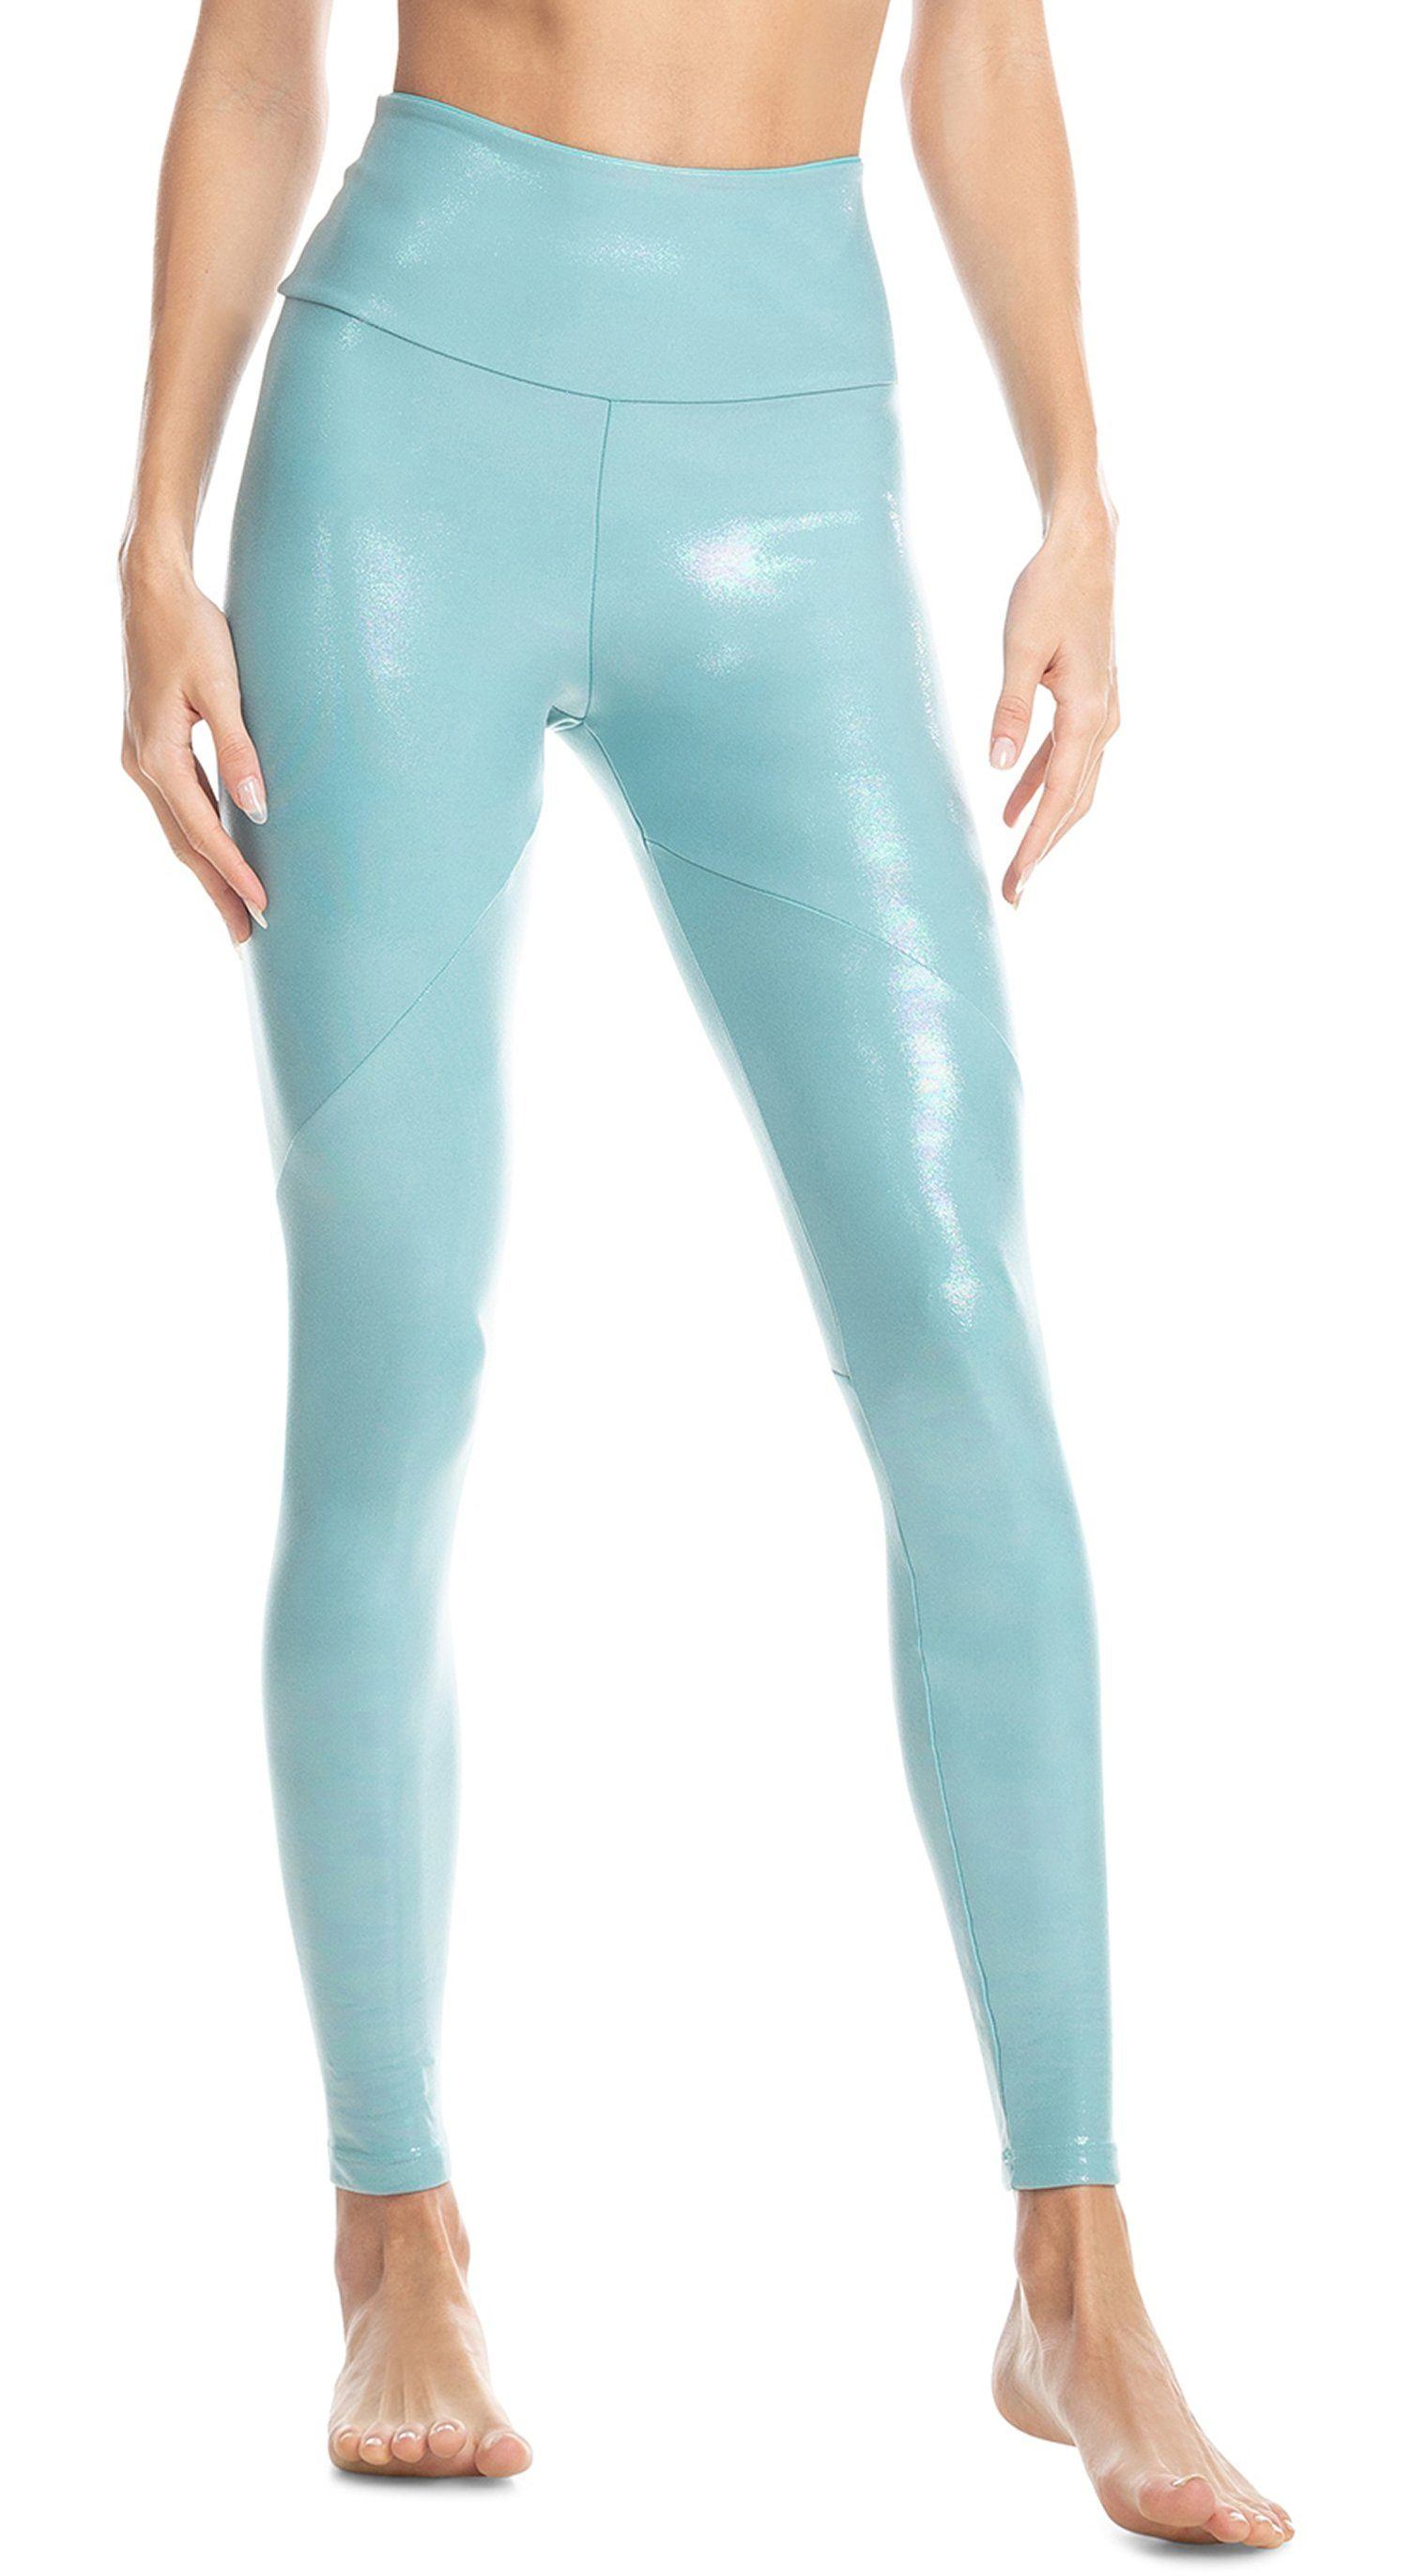 Regeneration Tight Green Foil Legging